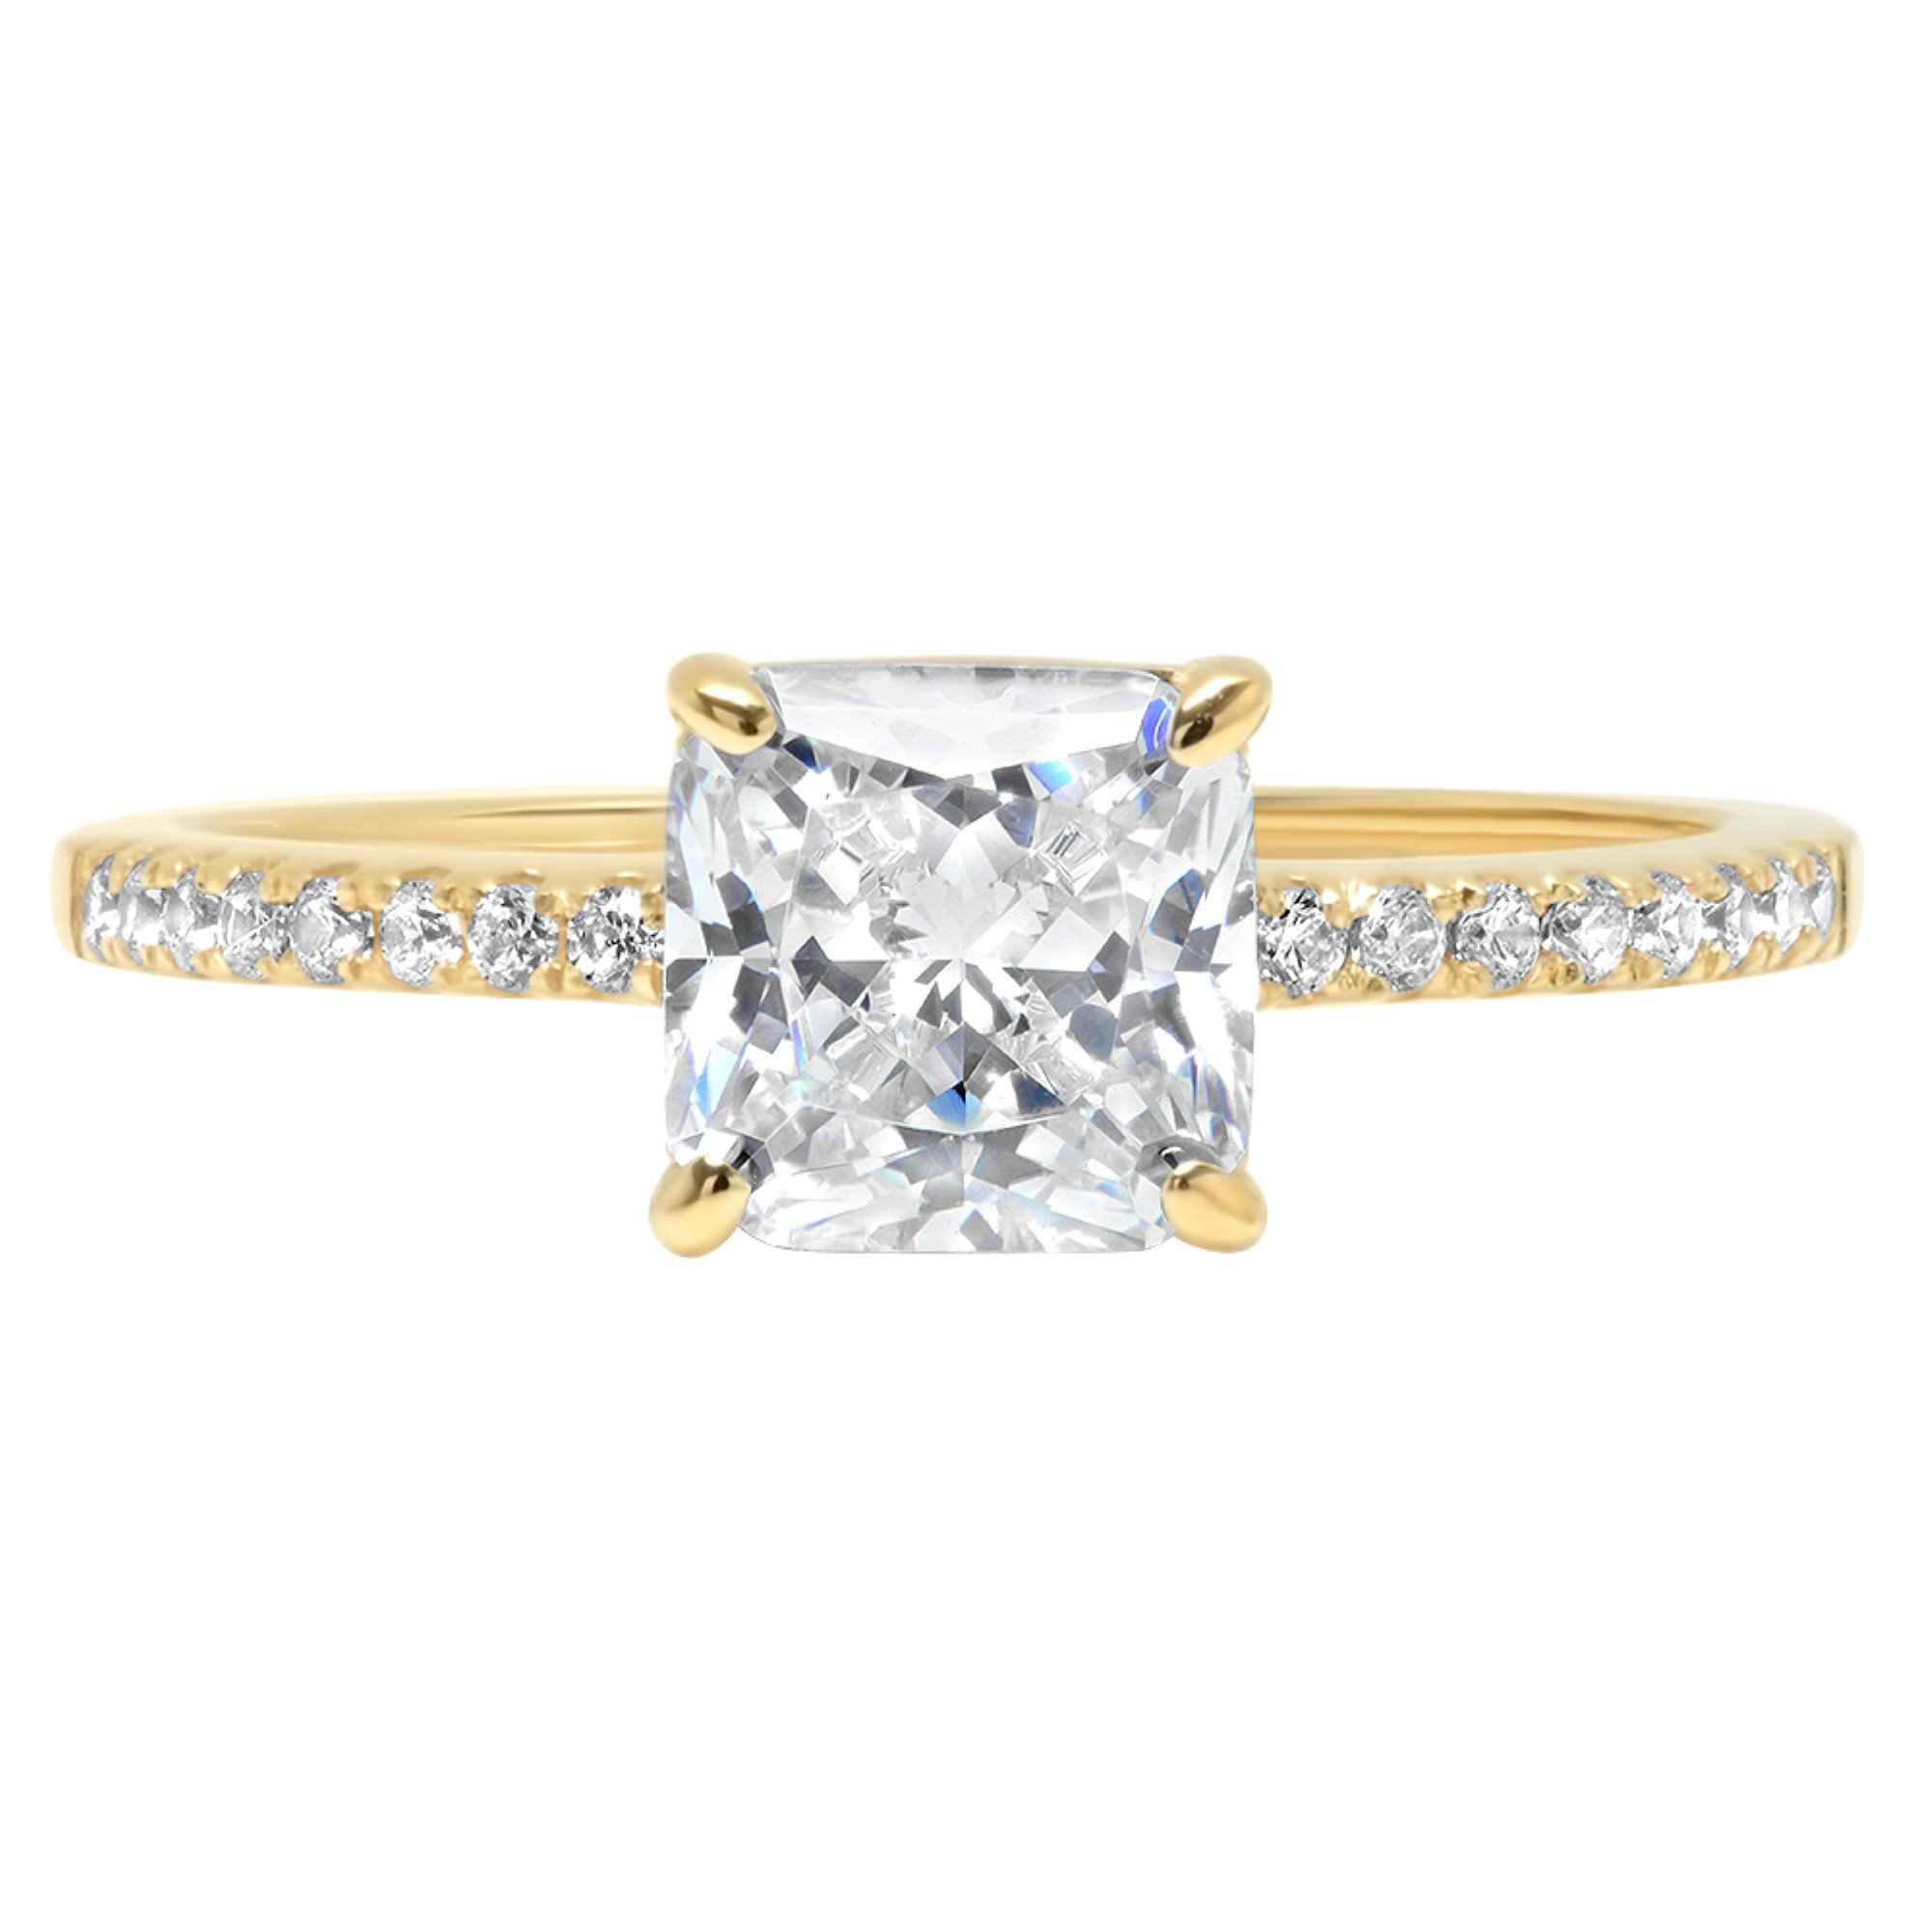 14k Yellow Gold 1.46ct Asscher Round Cut Classic Solitaire Designer Wedding Bridal Statement Anniversary Engagement Promise Accent Solitaire Ring, 5, 5